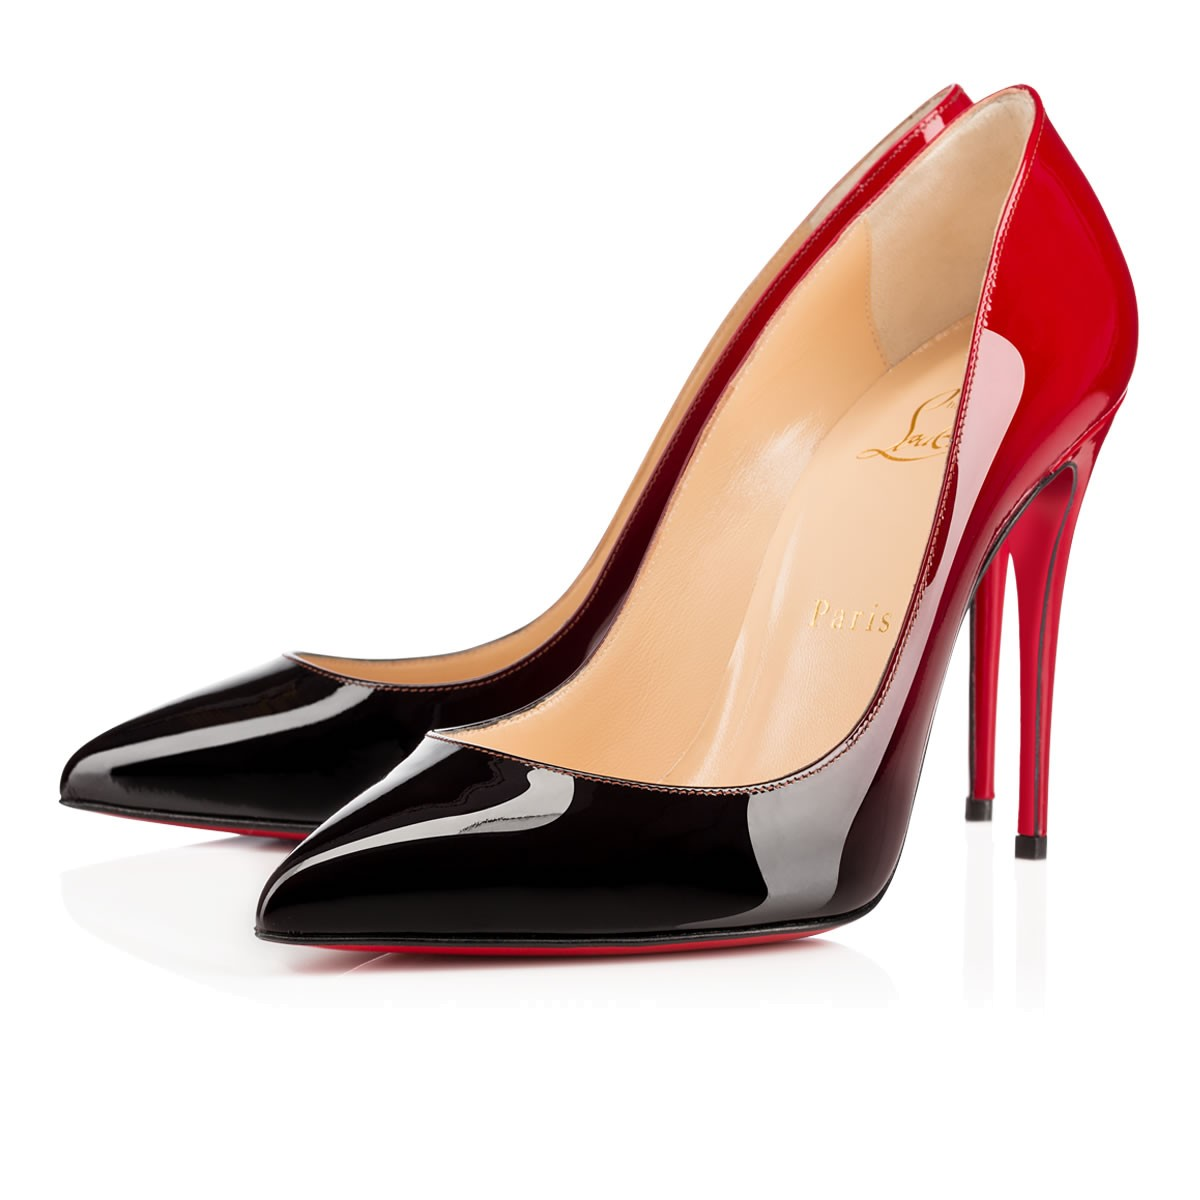 Chaussure Et Louboutin Chaussure Rouge Rouge Noir Chaussure Louboutin Noir Louboutin Et 3TFlKcu1J